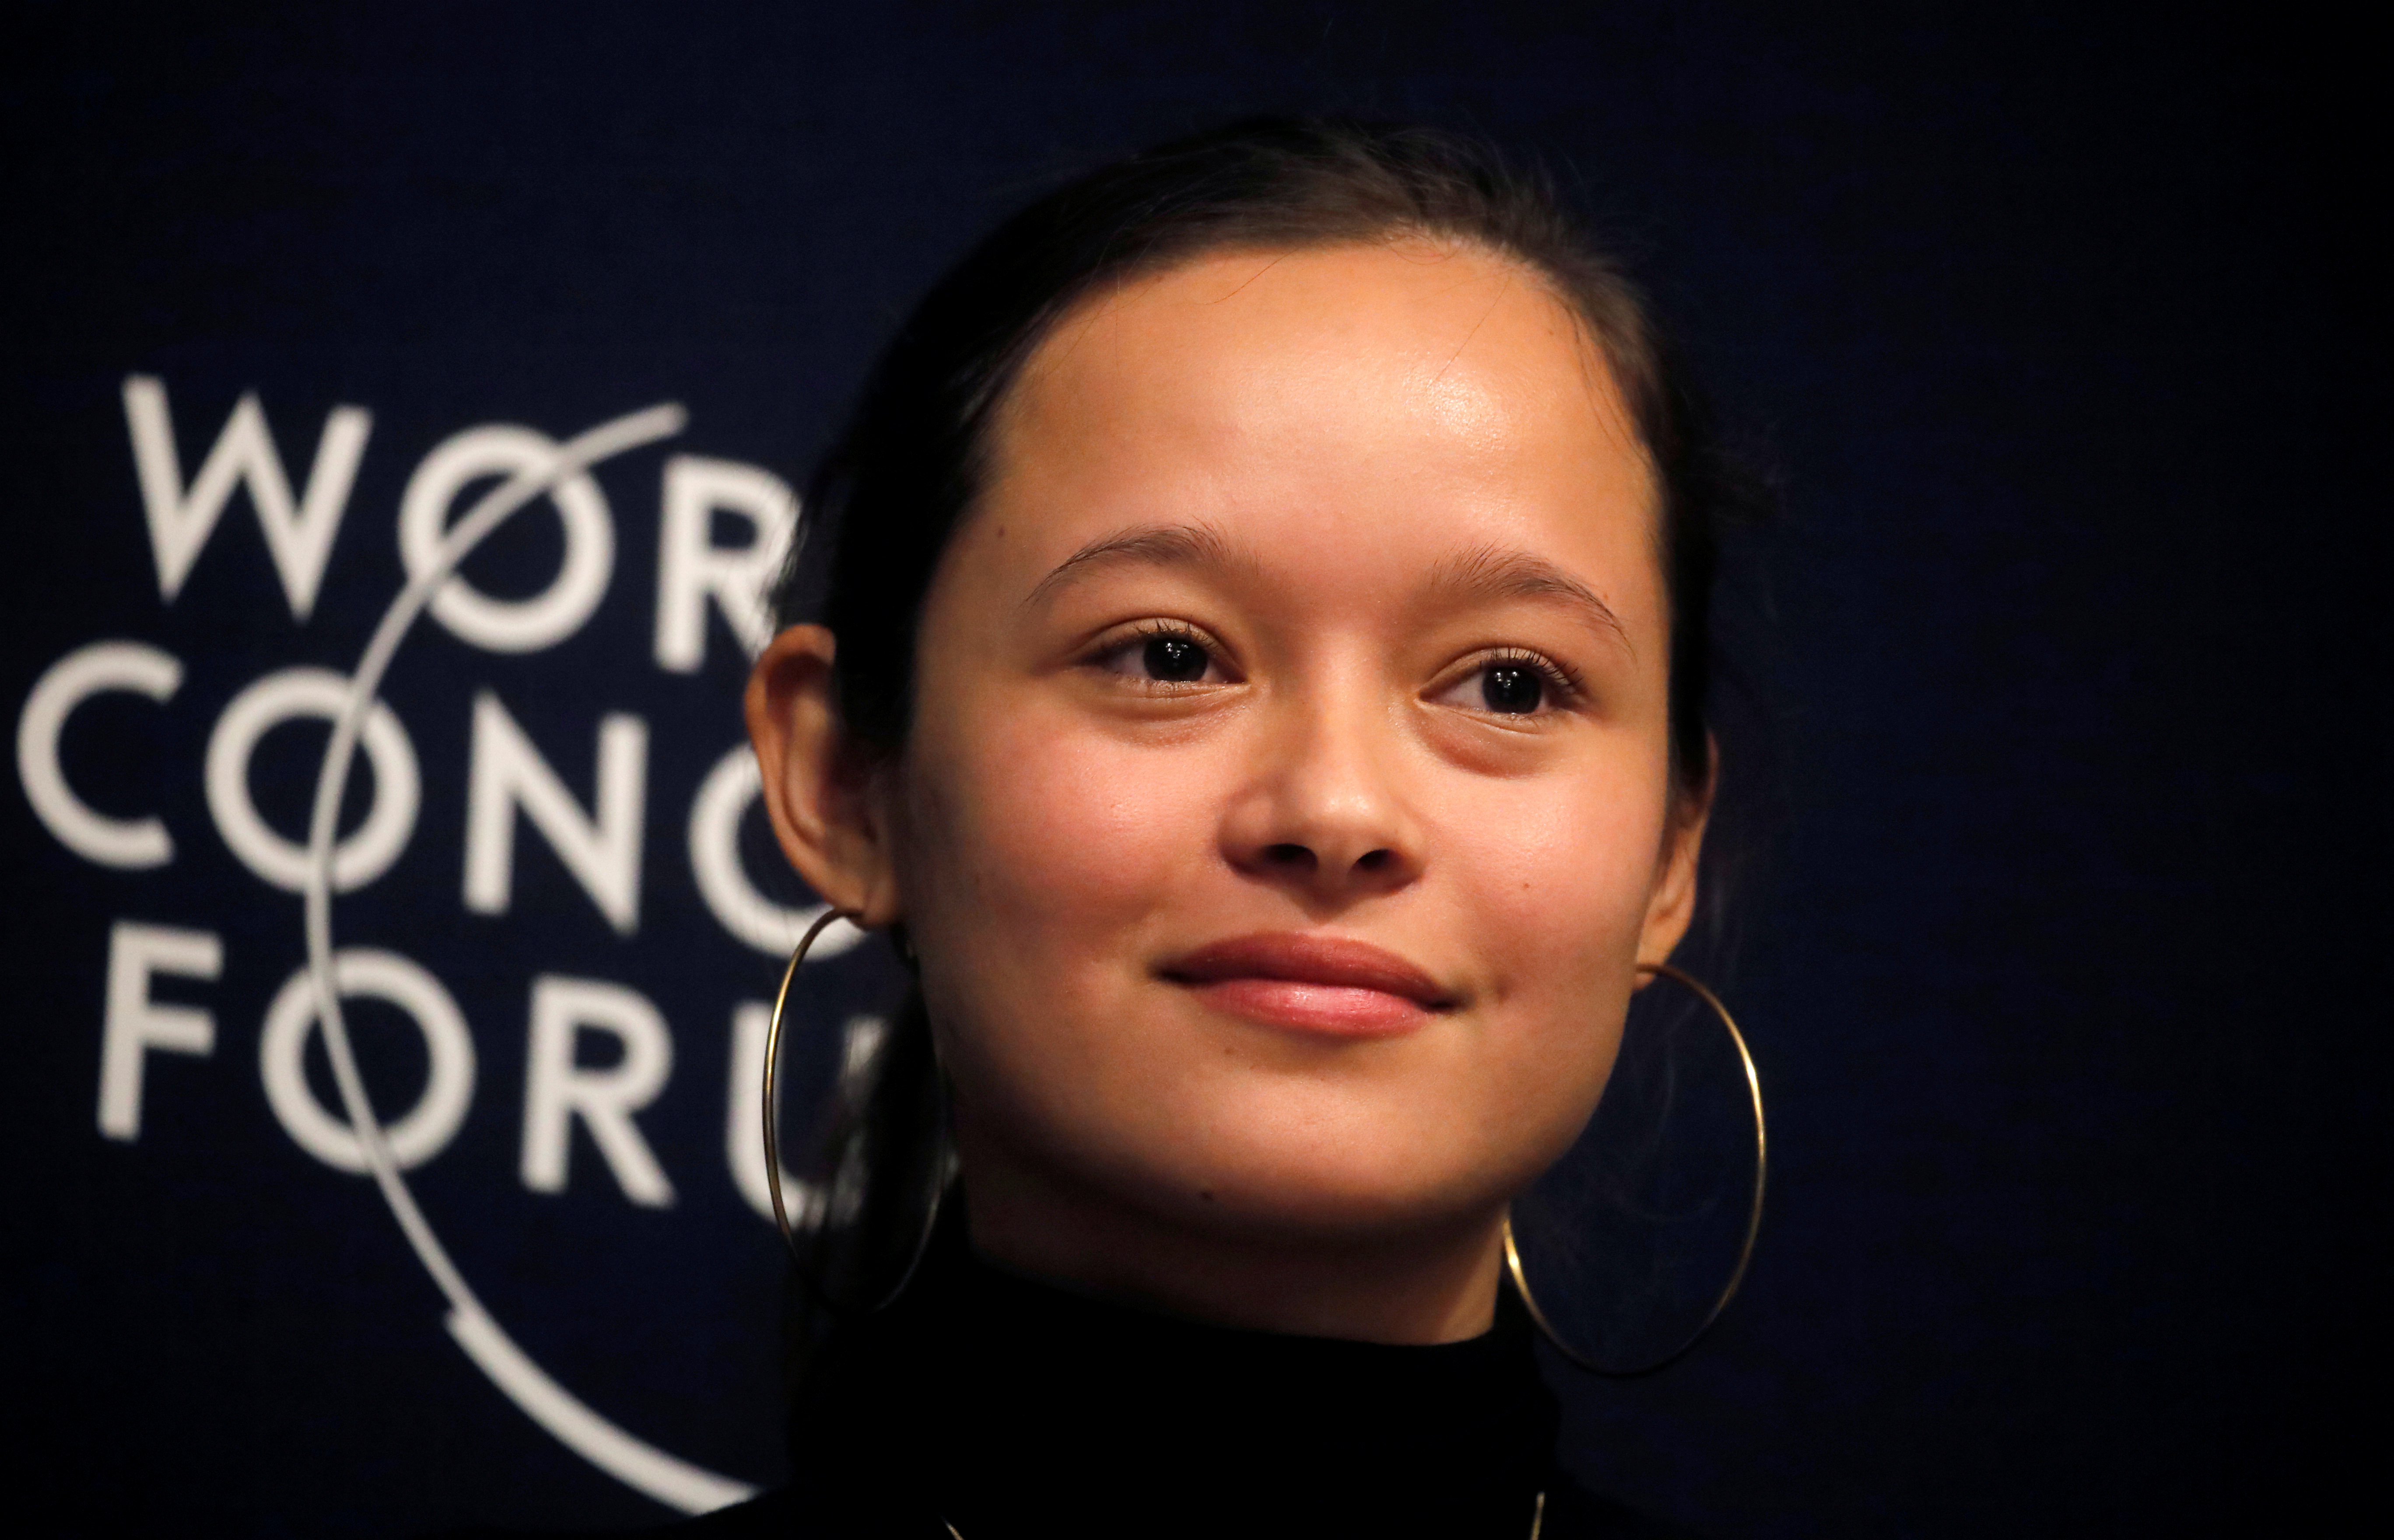 Young-environmental-activist-Melati-Wijsen-of-Indonesia-shares-tips-for-youth-activists